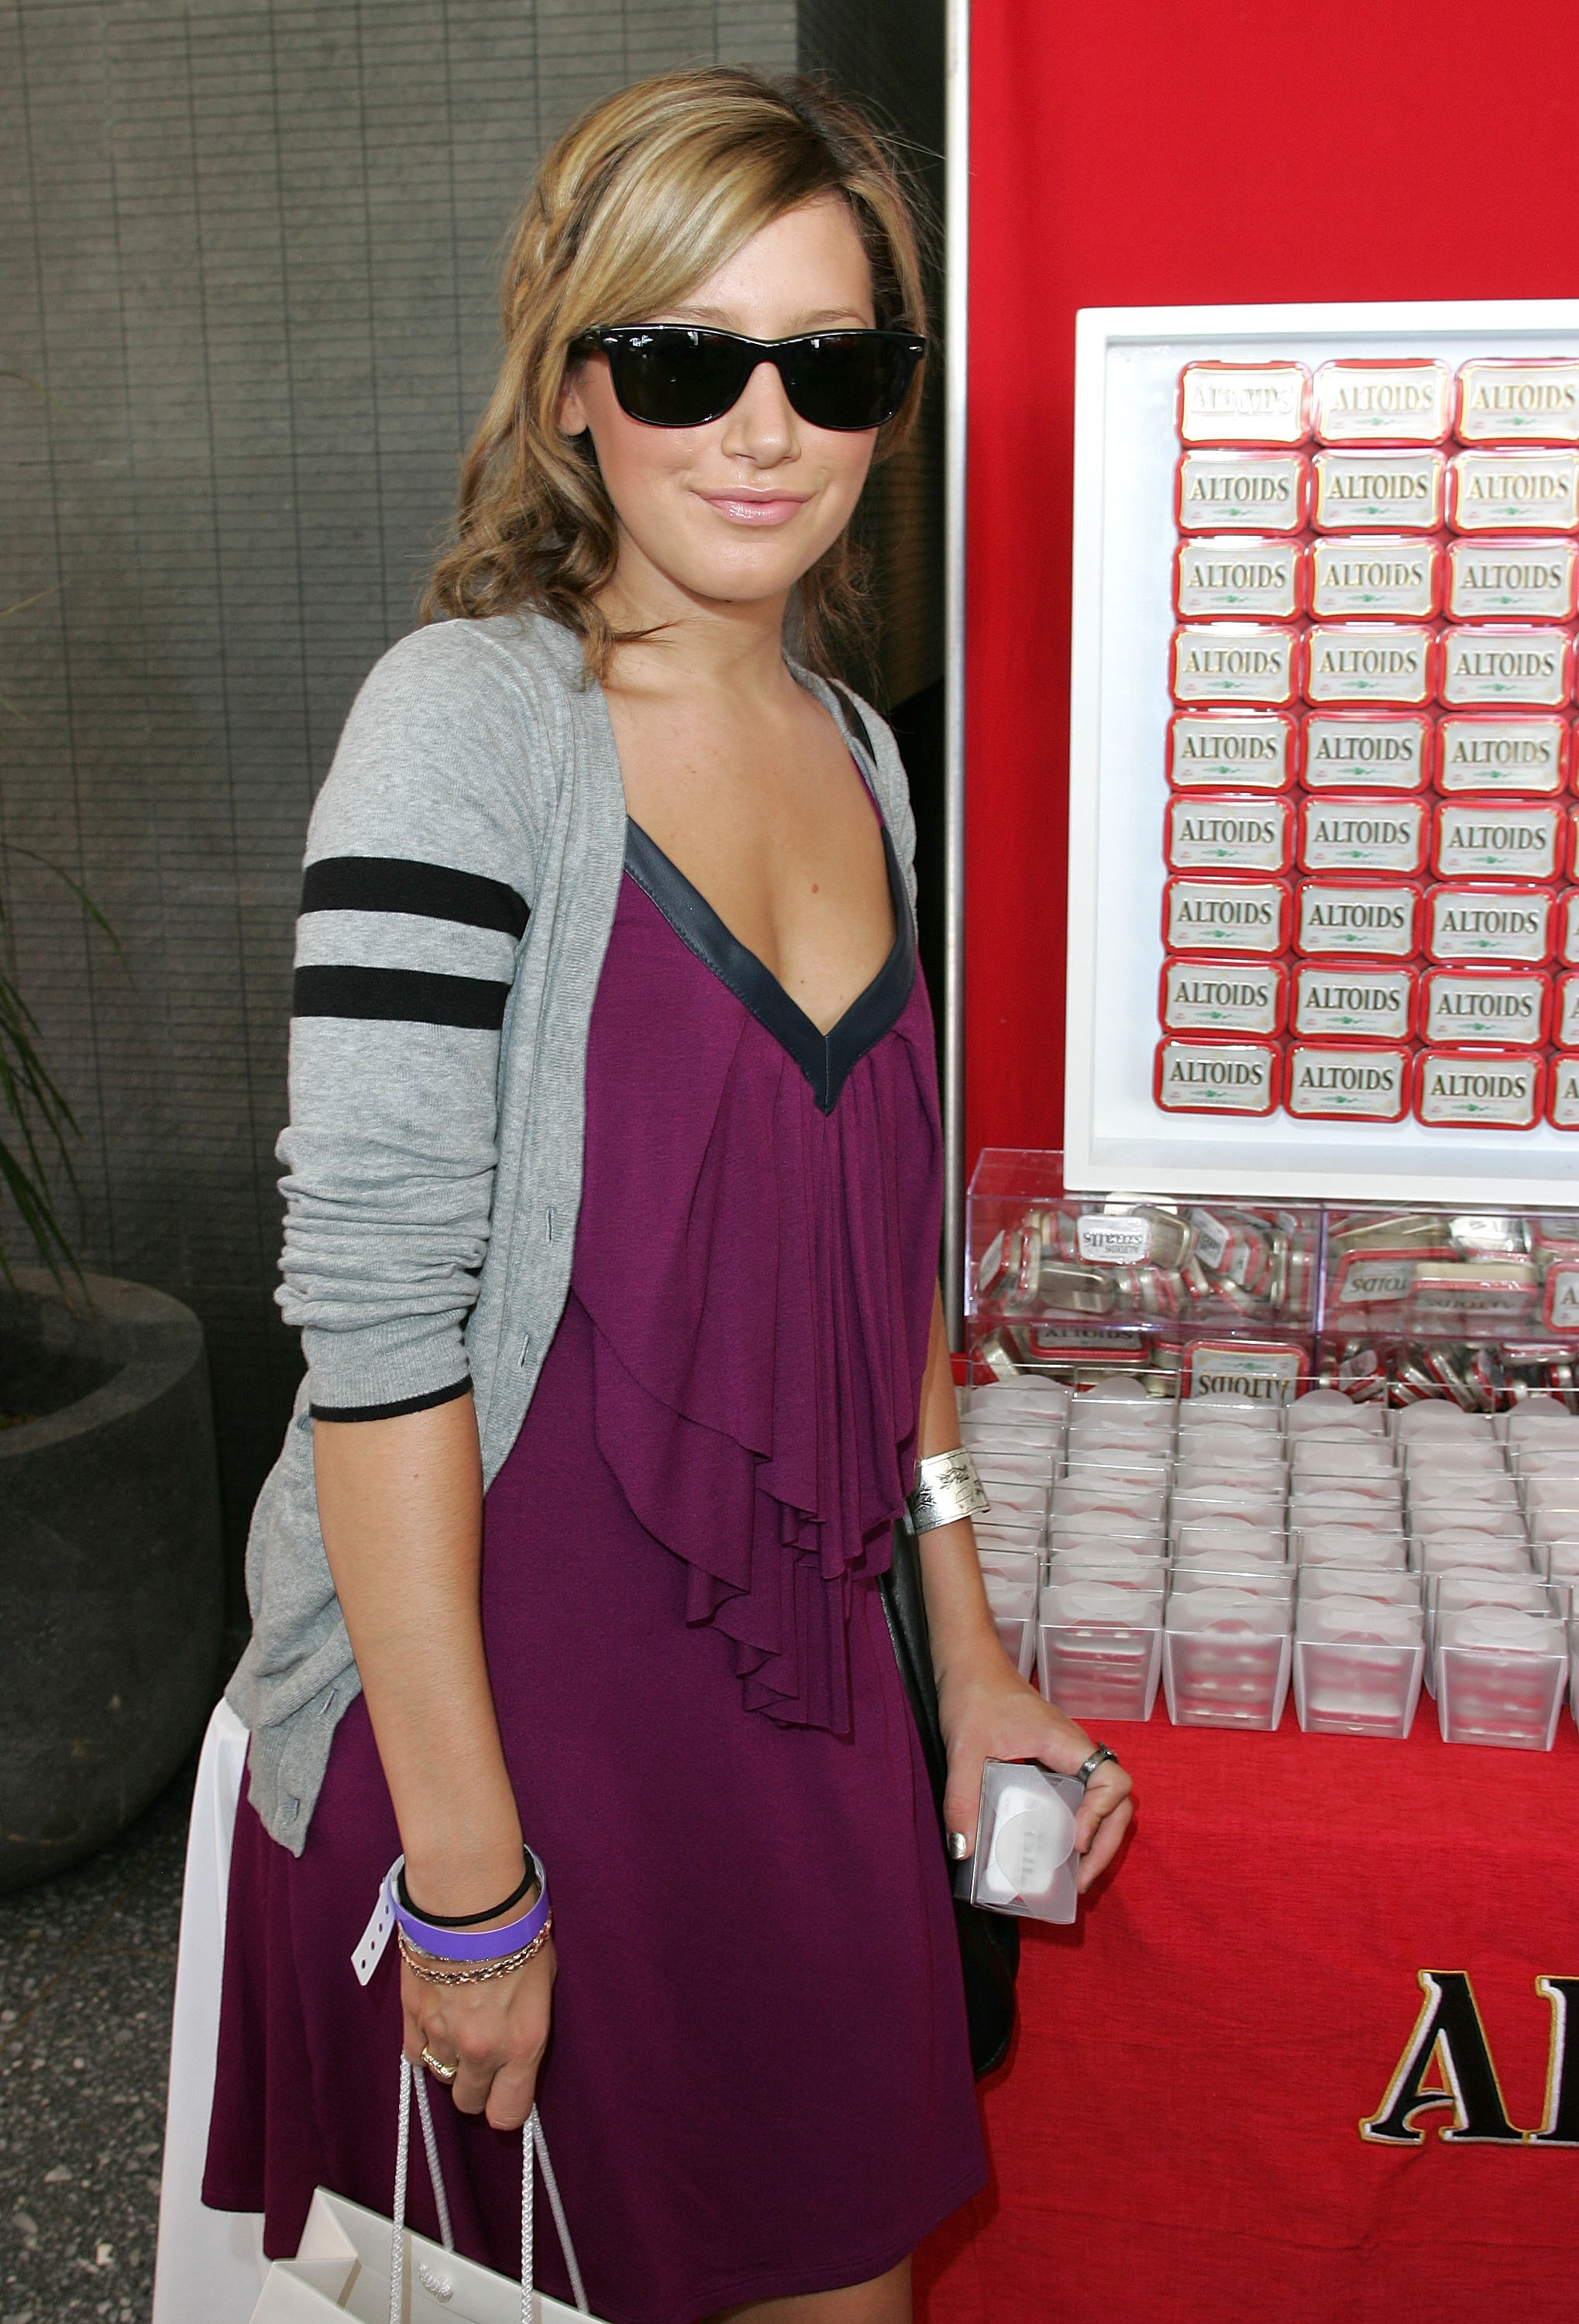 00762_Ashley_Tisdale_2008-09-18_-_The_Nine_West_suite_at_the_Kari_Feinstein_Emmy_Style_Lounge_122_1150lo.jpg